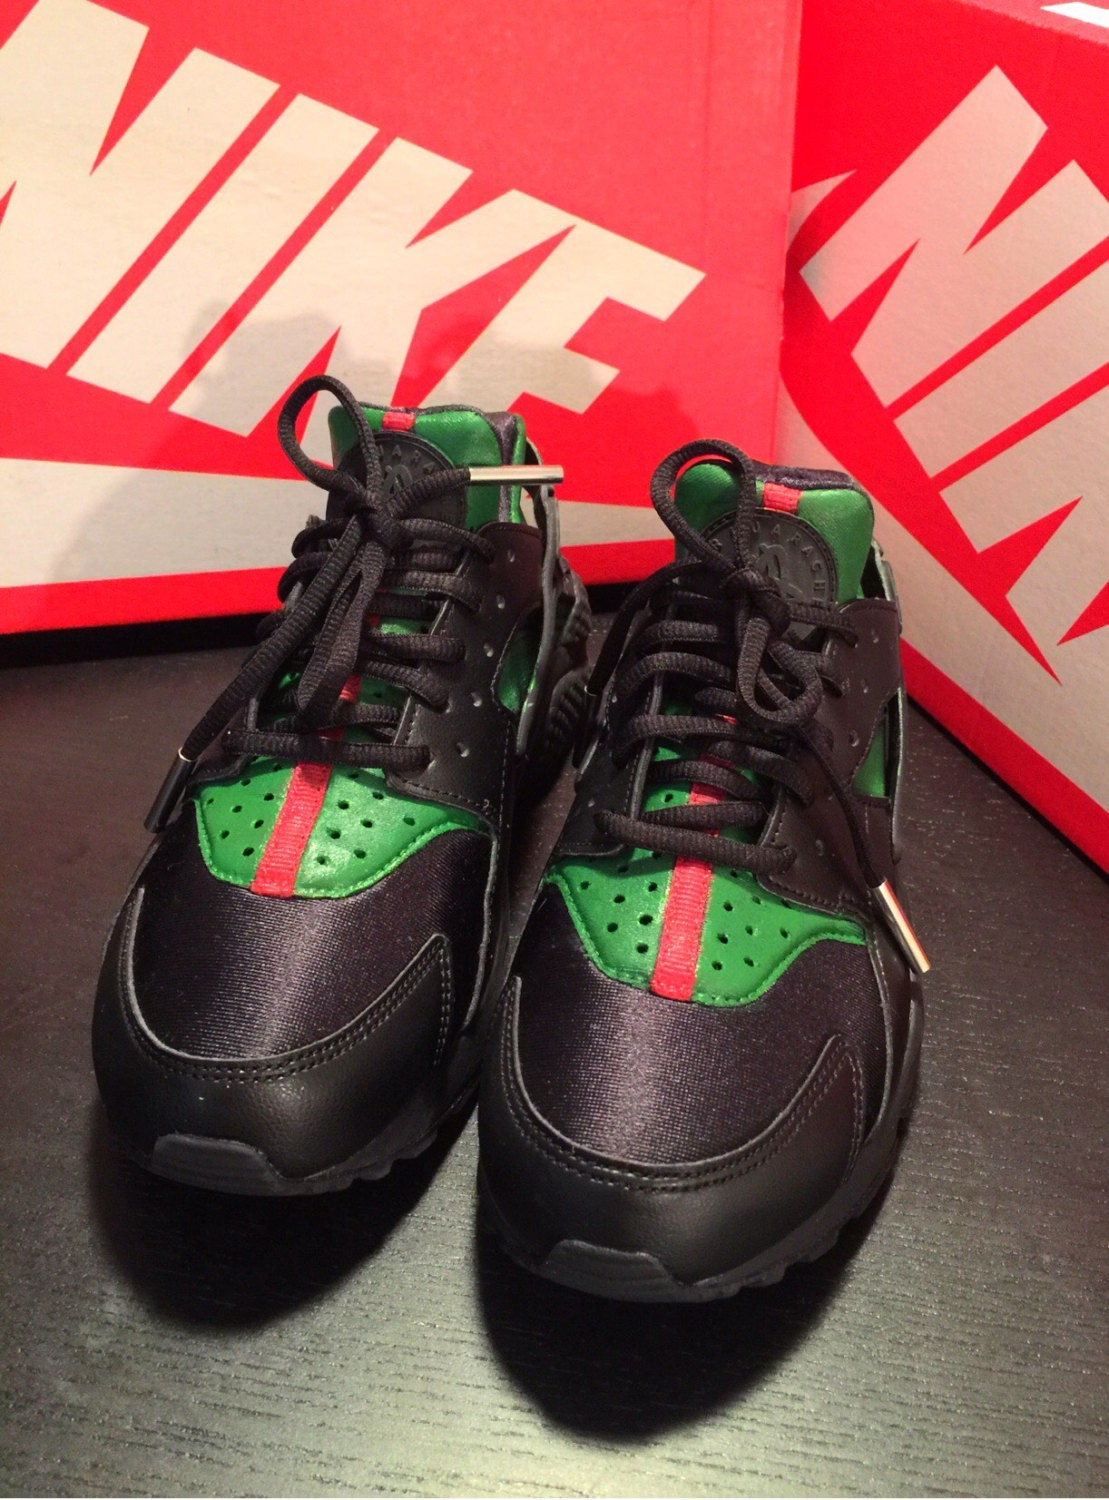 Free Shipping Gucci Inspired Nike Huaraches Custom By QueenofCustomz On Etsy